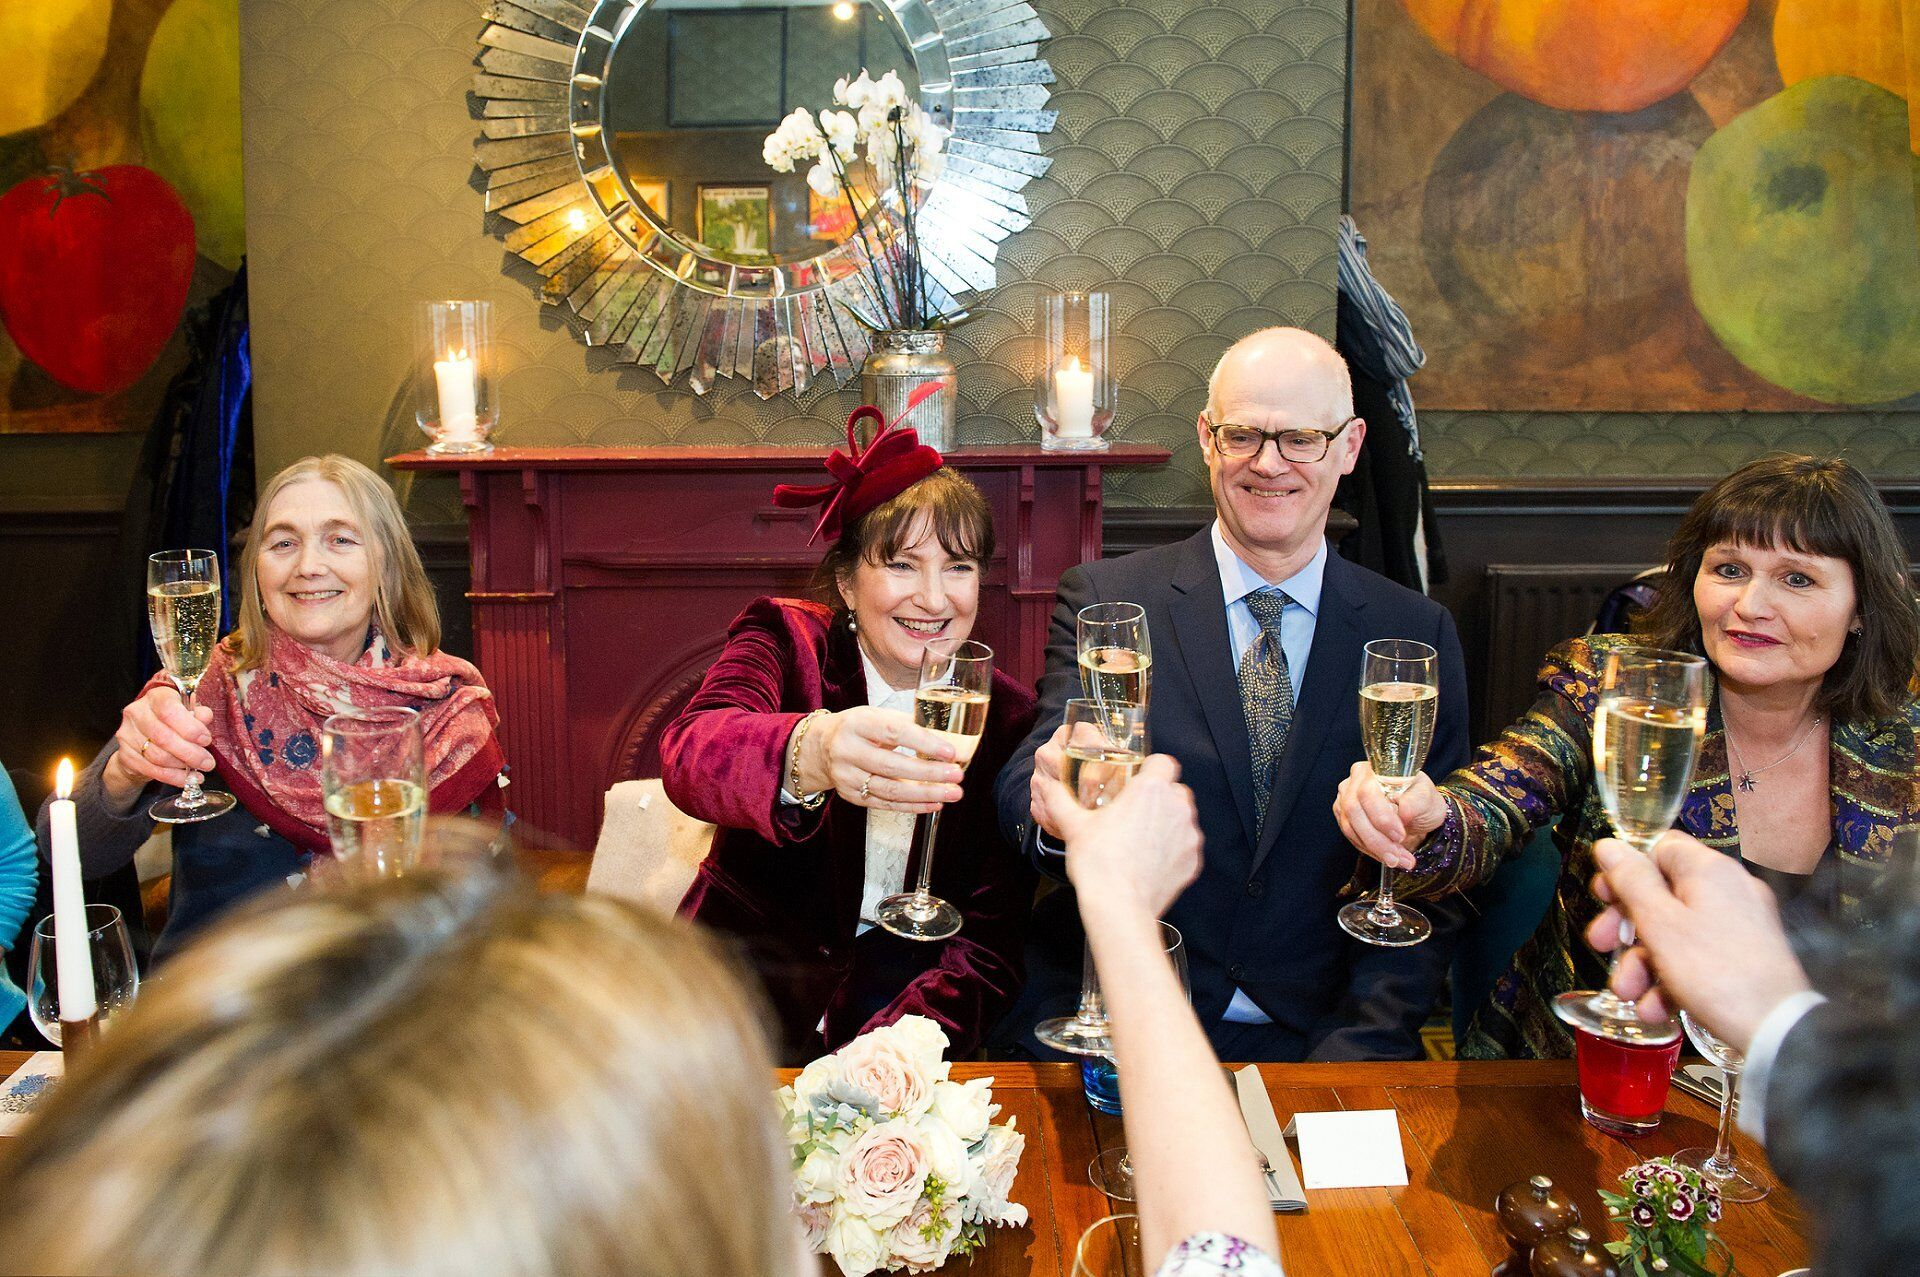 chelsea pub venue for small wedding in london - bride and groom with champagne